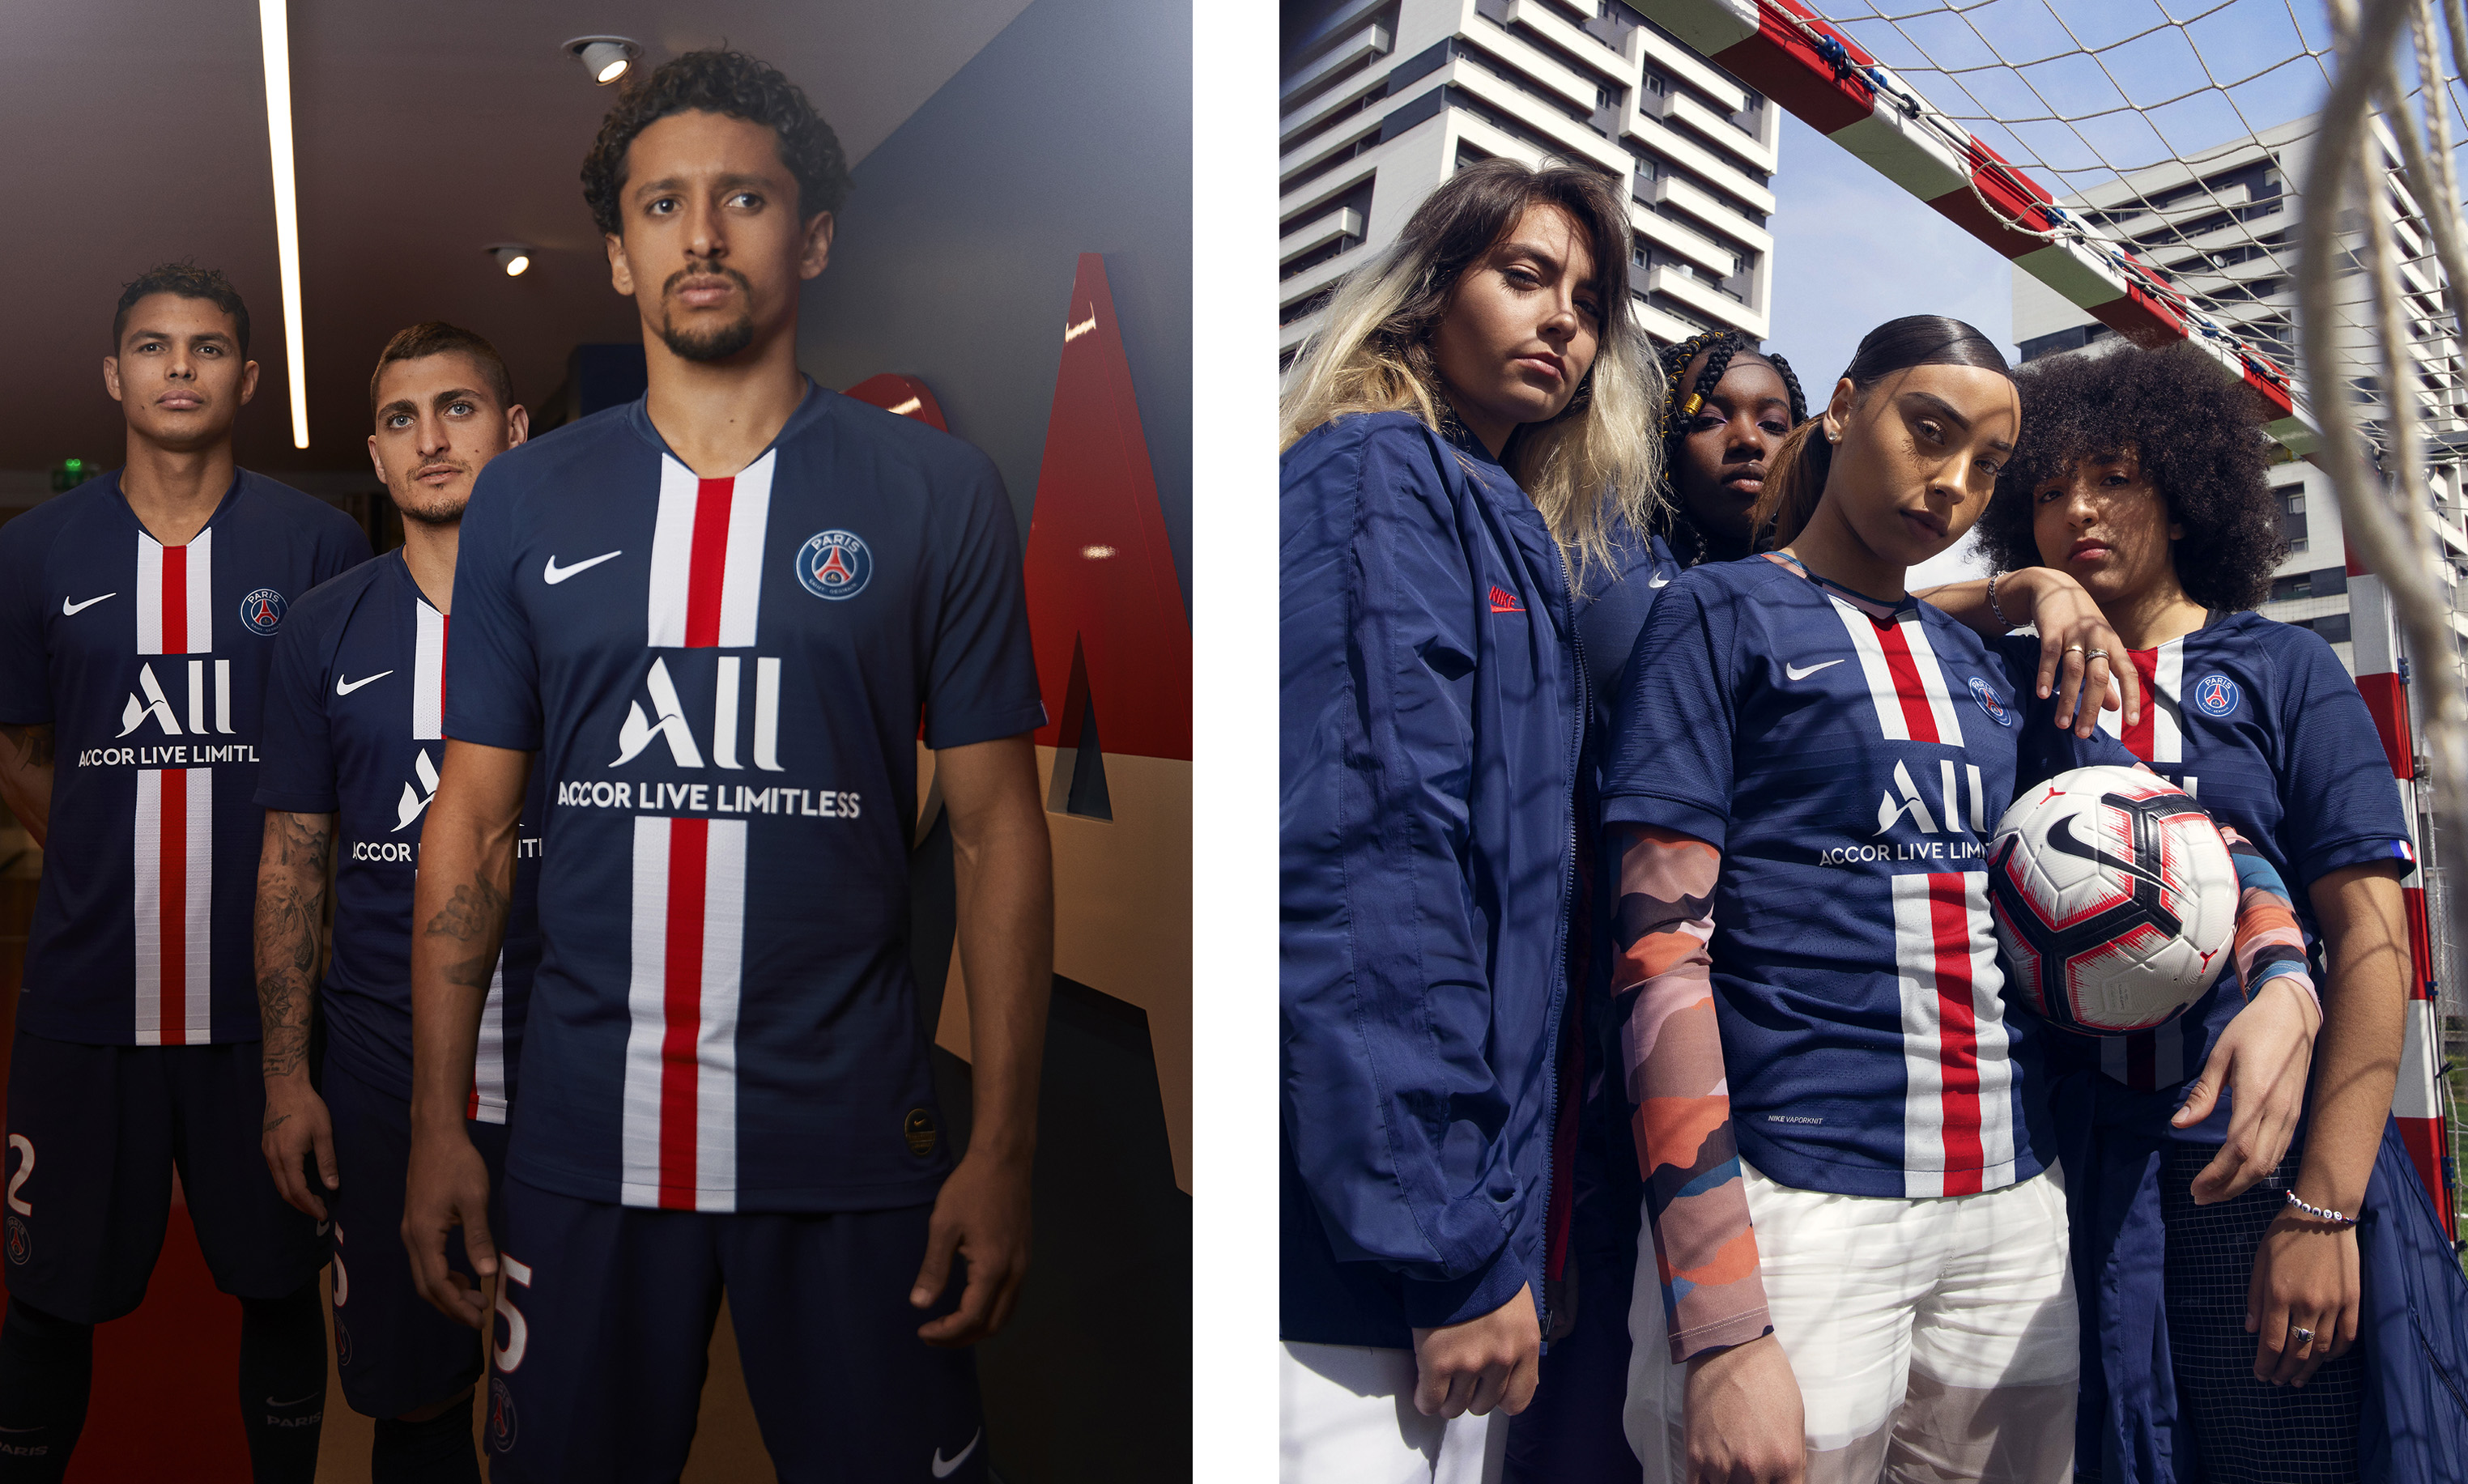 New Paris Saint-Germain home kit